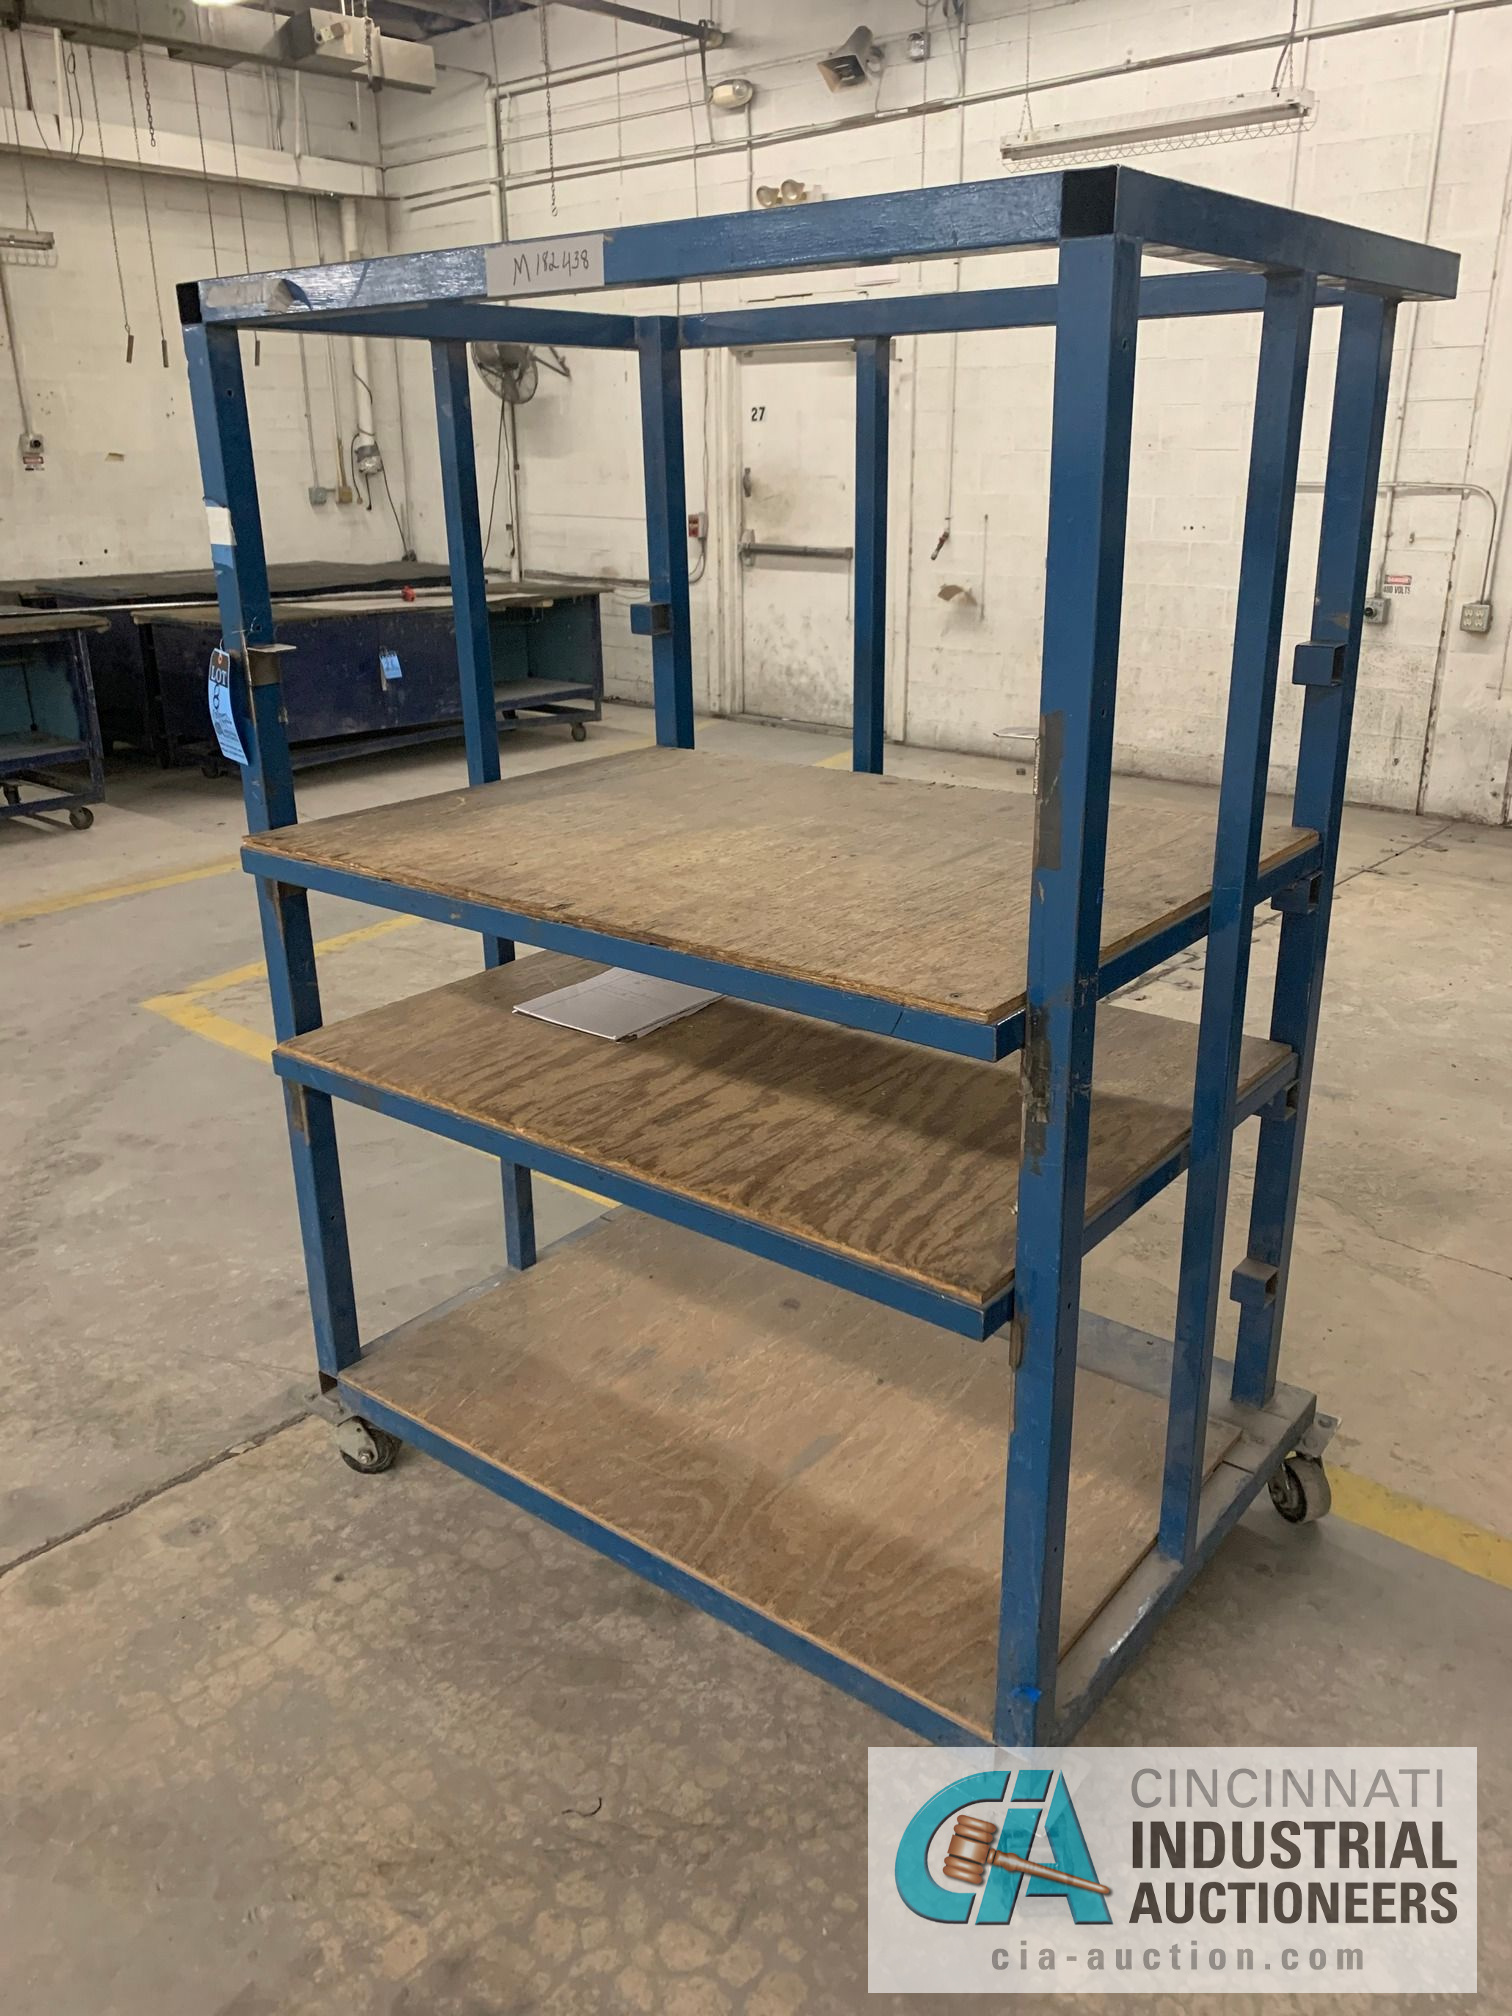 3' X 4' X 6' HIGH APPROX. MULTI-SHELF CARTS - Image 4 of 4